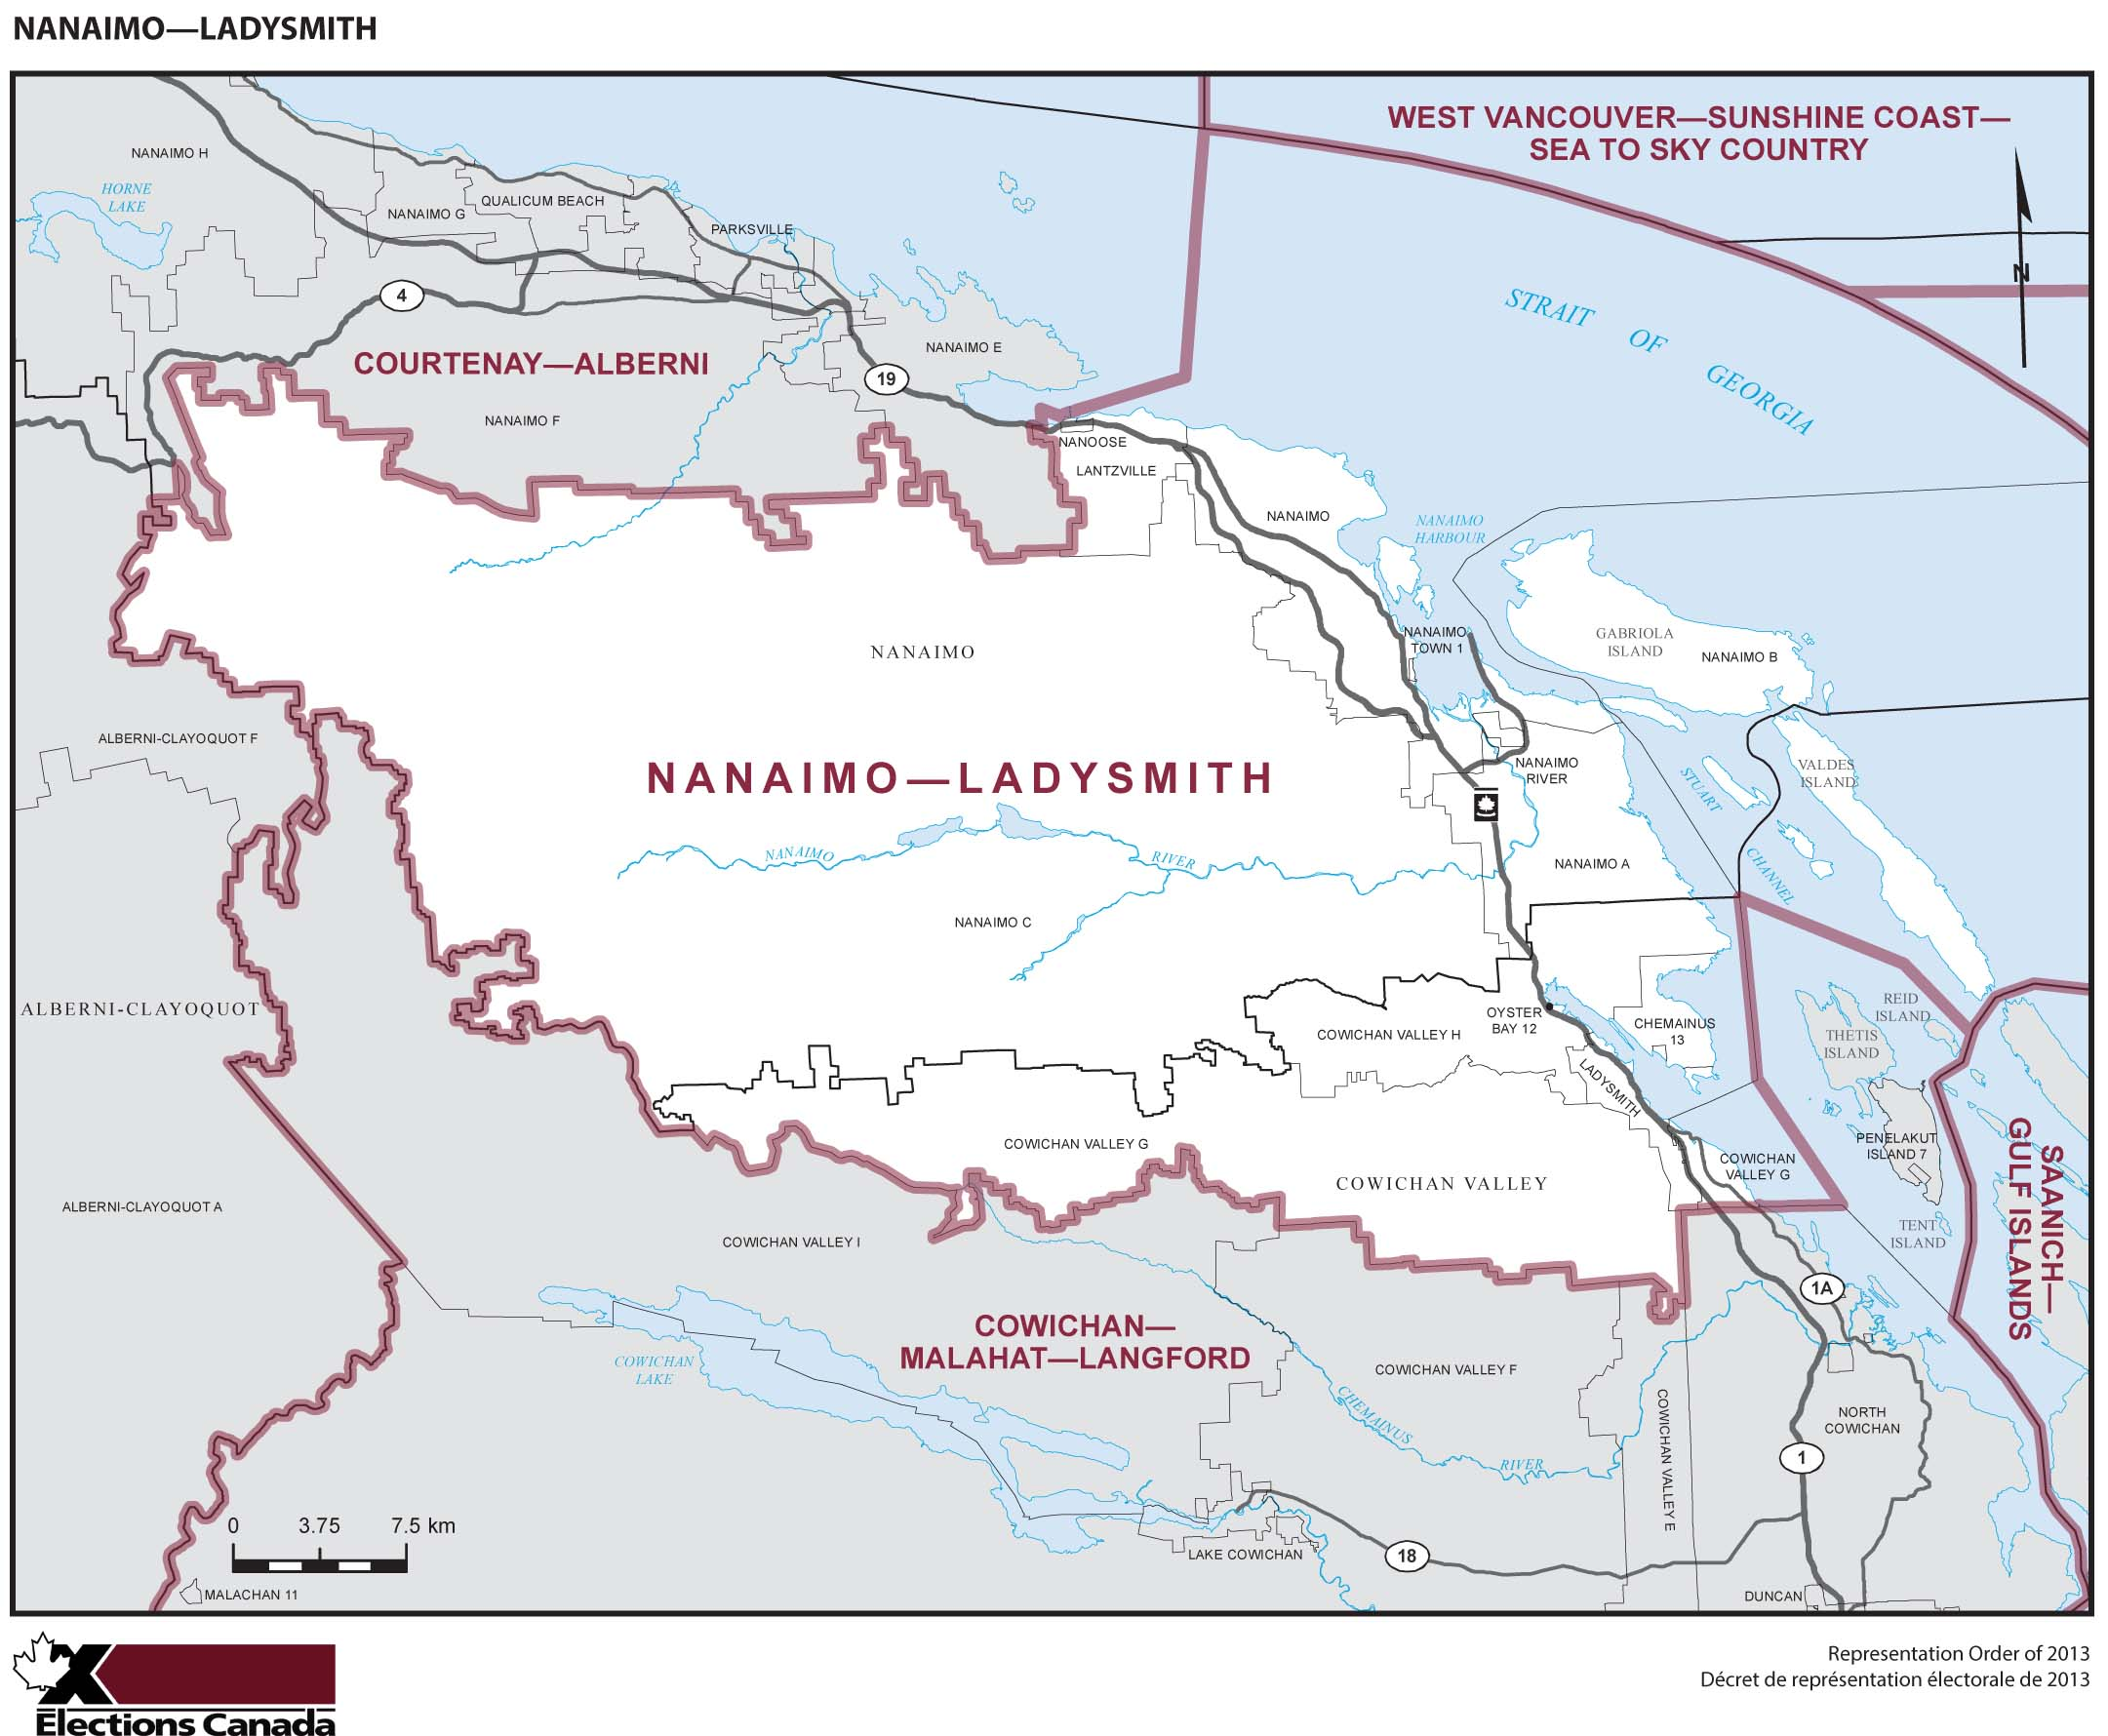 Map: Nanaimo--Ladysmith, Federal electoral district, 2013 Representation Order (in white), British Columbia